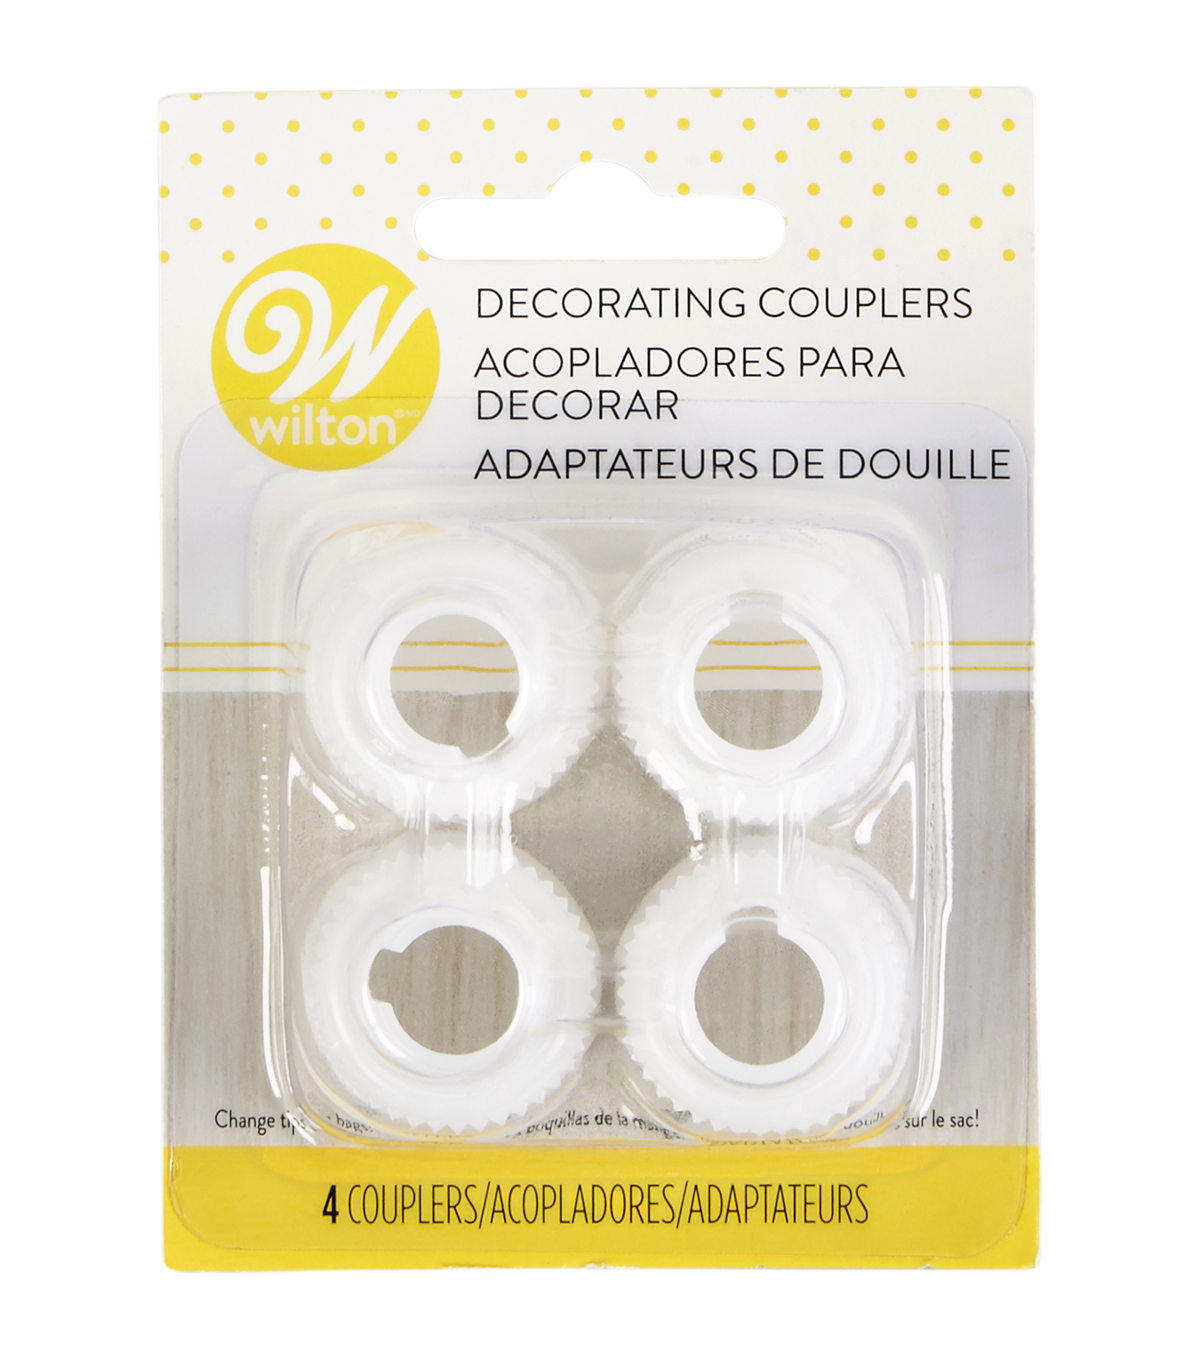 Wilton Decorating Couplers